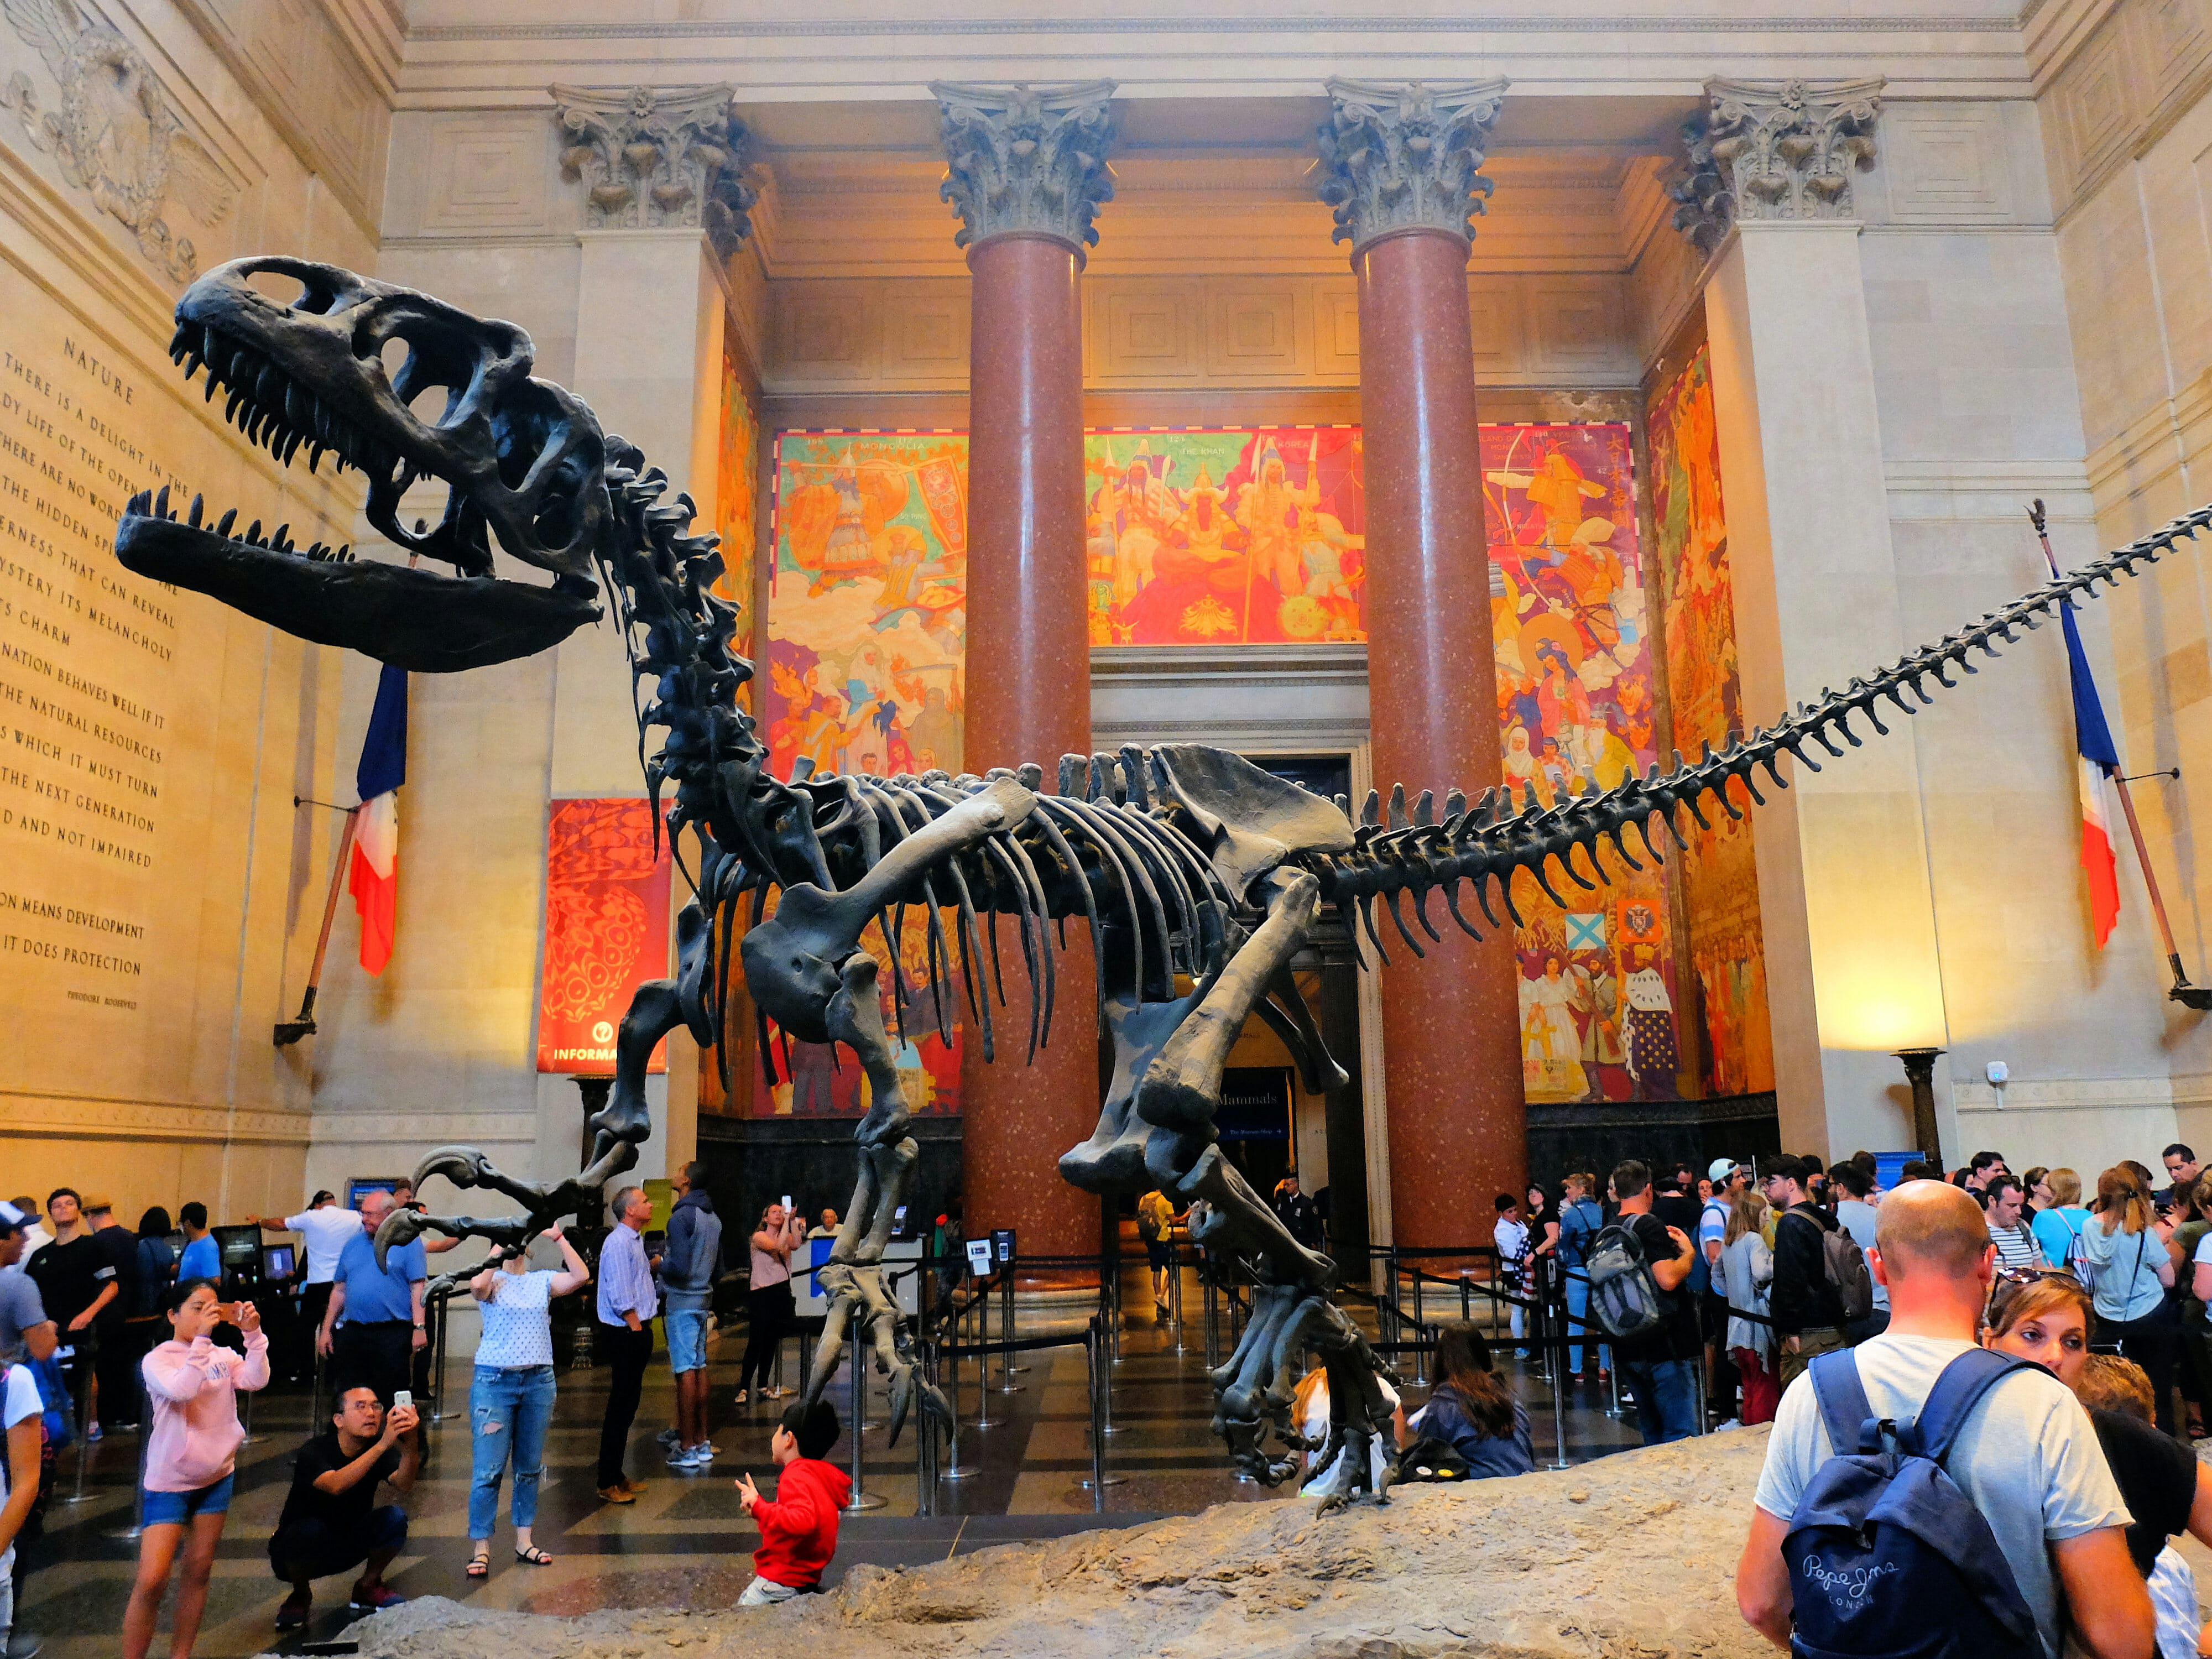 American Museum of Natural History in New York T Rex High Quality Wallpaper